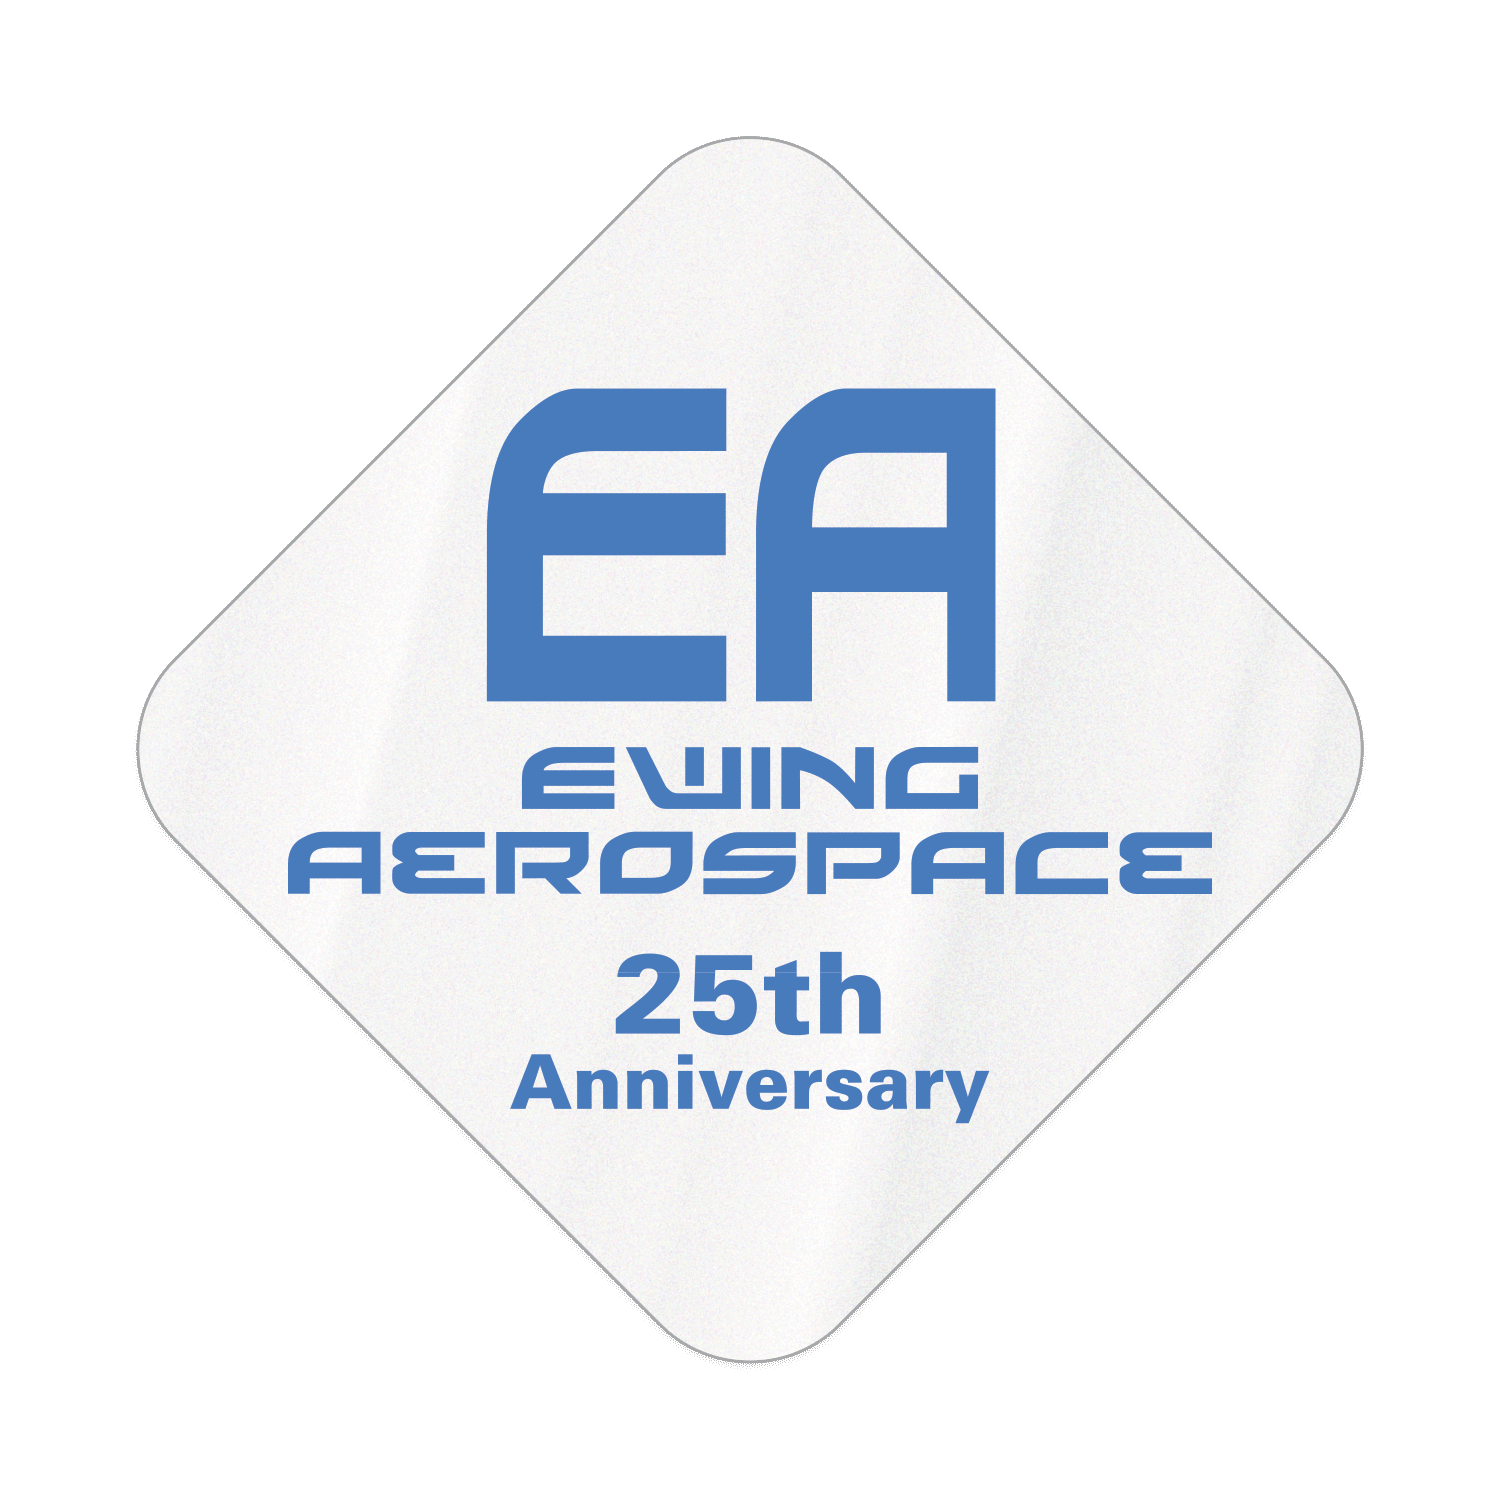 https://www.sswprinting.com/images/products_gallery_images/13203_EA-Ewing-Aerospace_hi-res.png